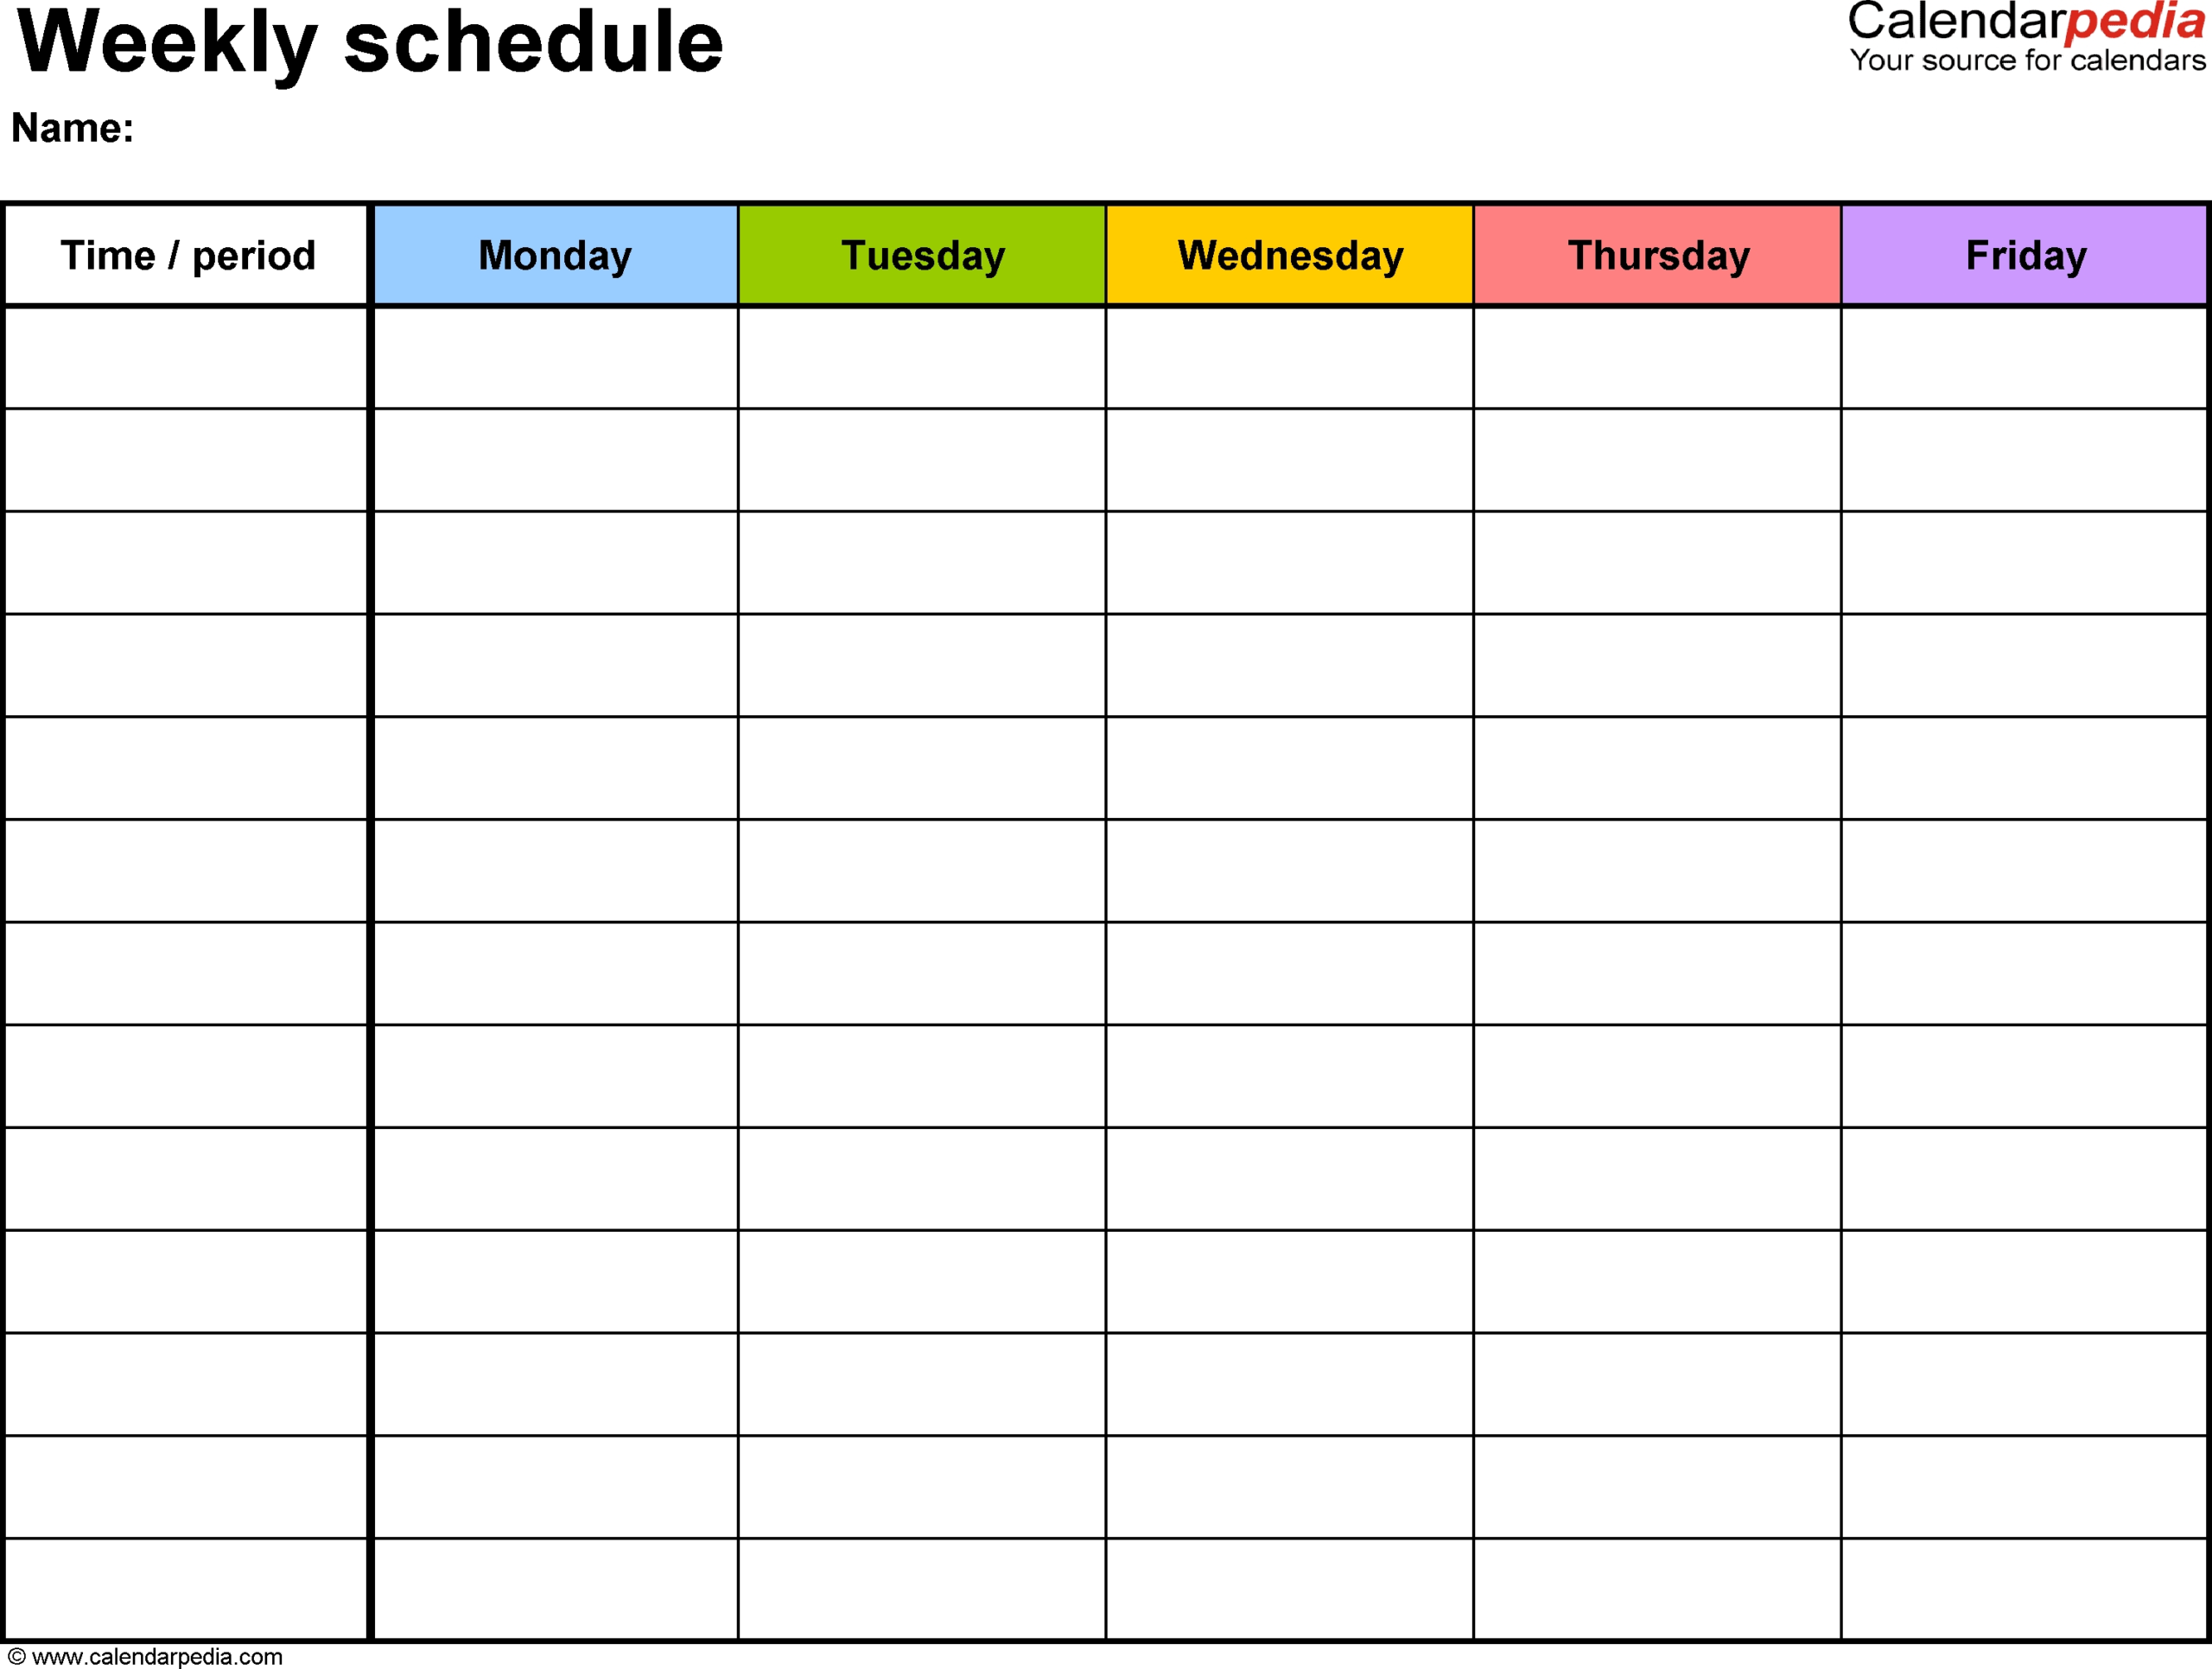 Weekly Calendar Template 7 Day  Calendar Inspiration Design in 7 Day Weekly Planner Template